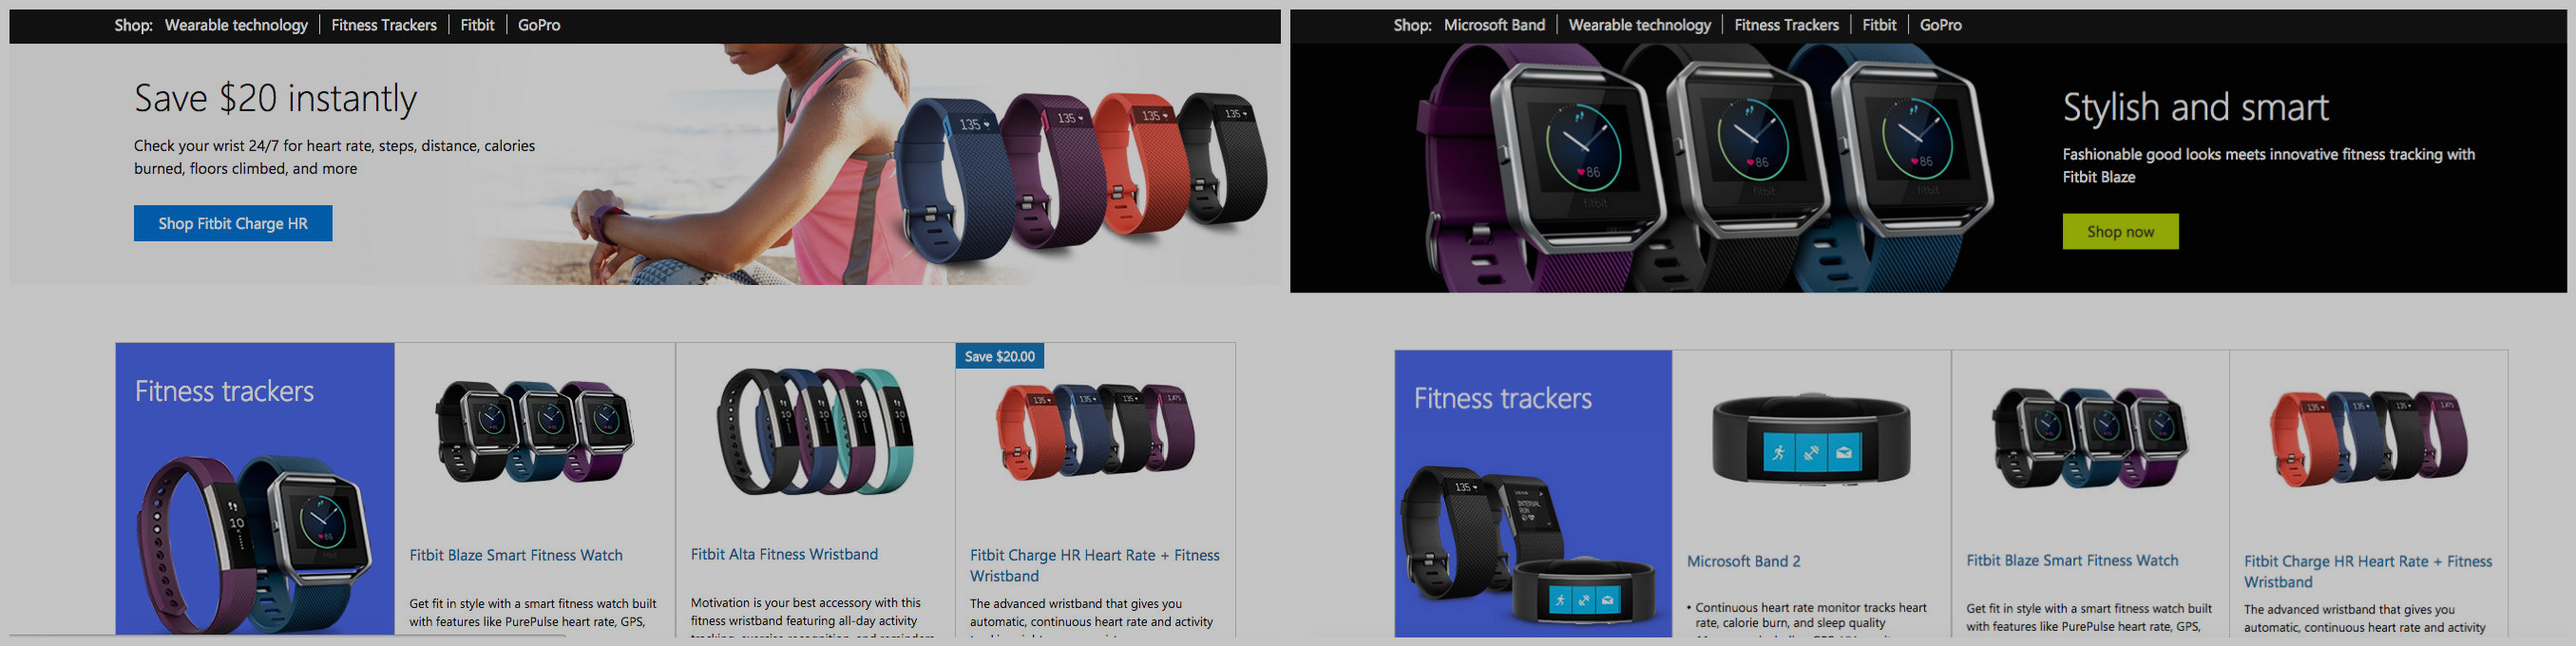 Microsoft Band Removed From Website; No Plans For Band 3